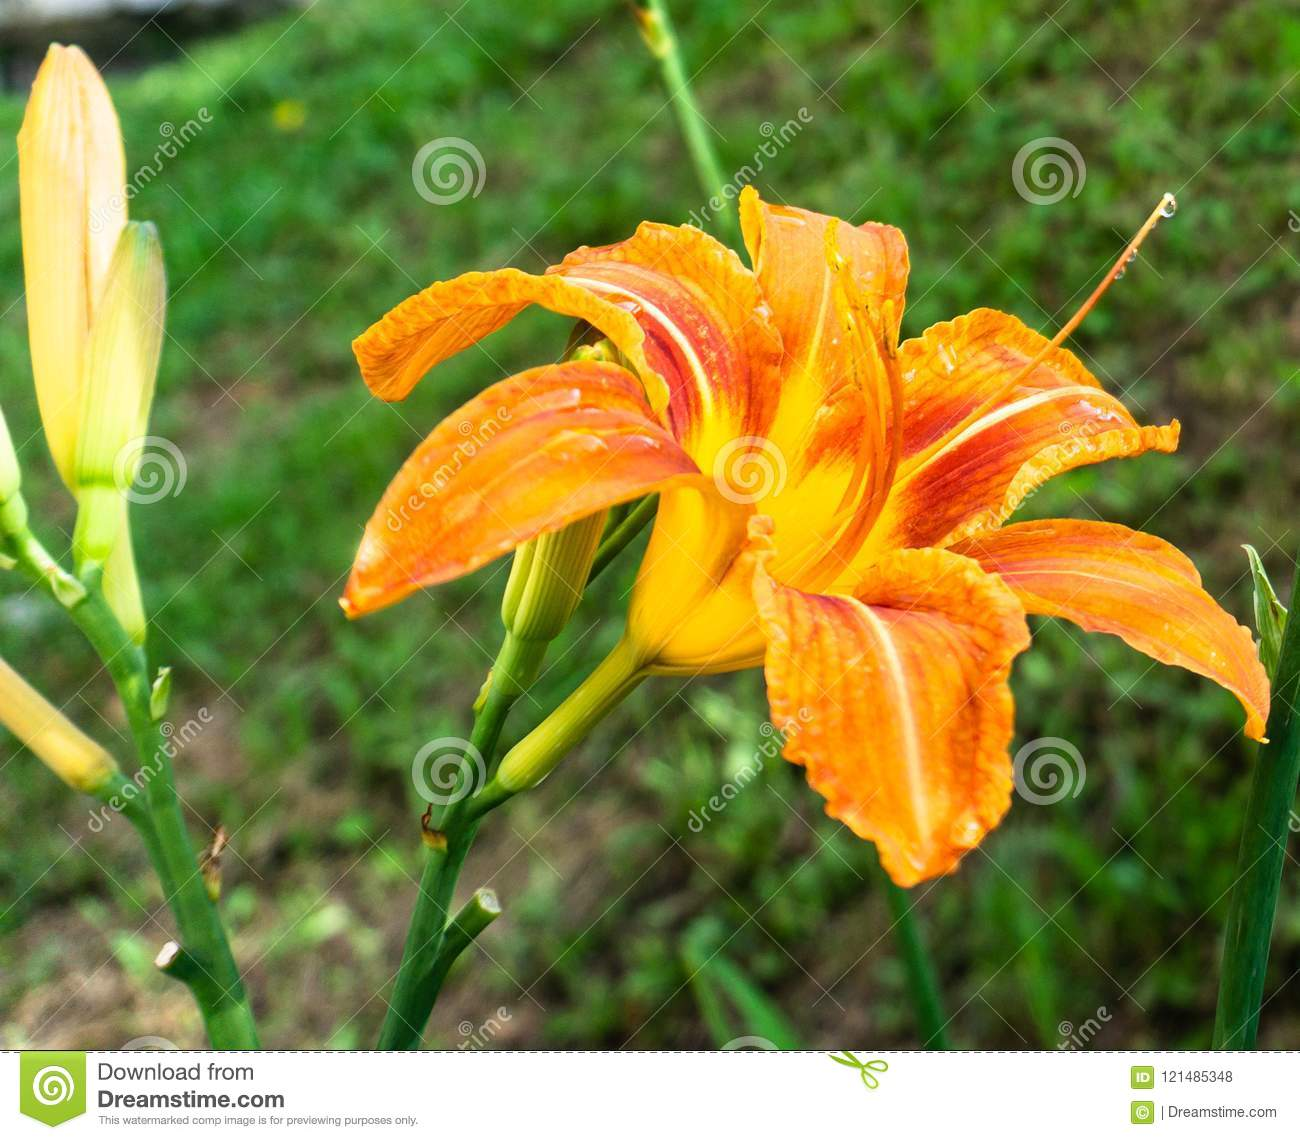 Find Orange Lily Lilium Flower With Drops Of Dew Summer Time In The